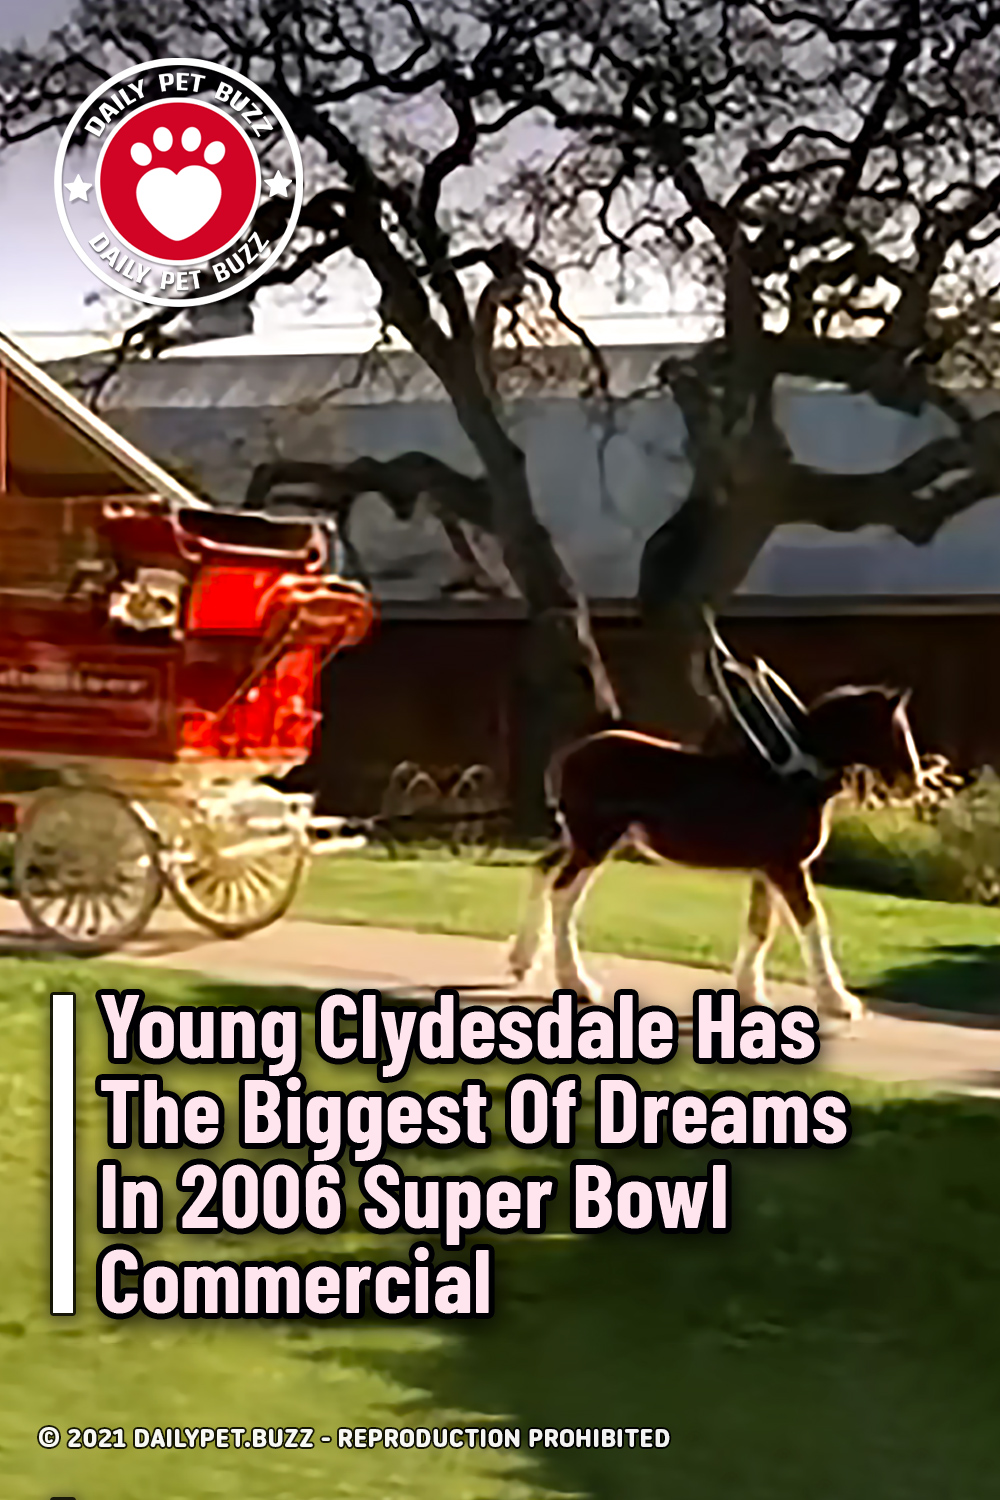 Young Clydesdale Has The Biggest Of Dreams In 2006 Super Bowl Commercial